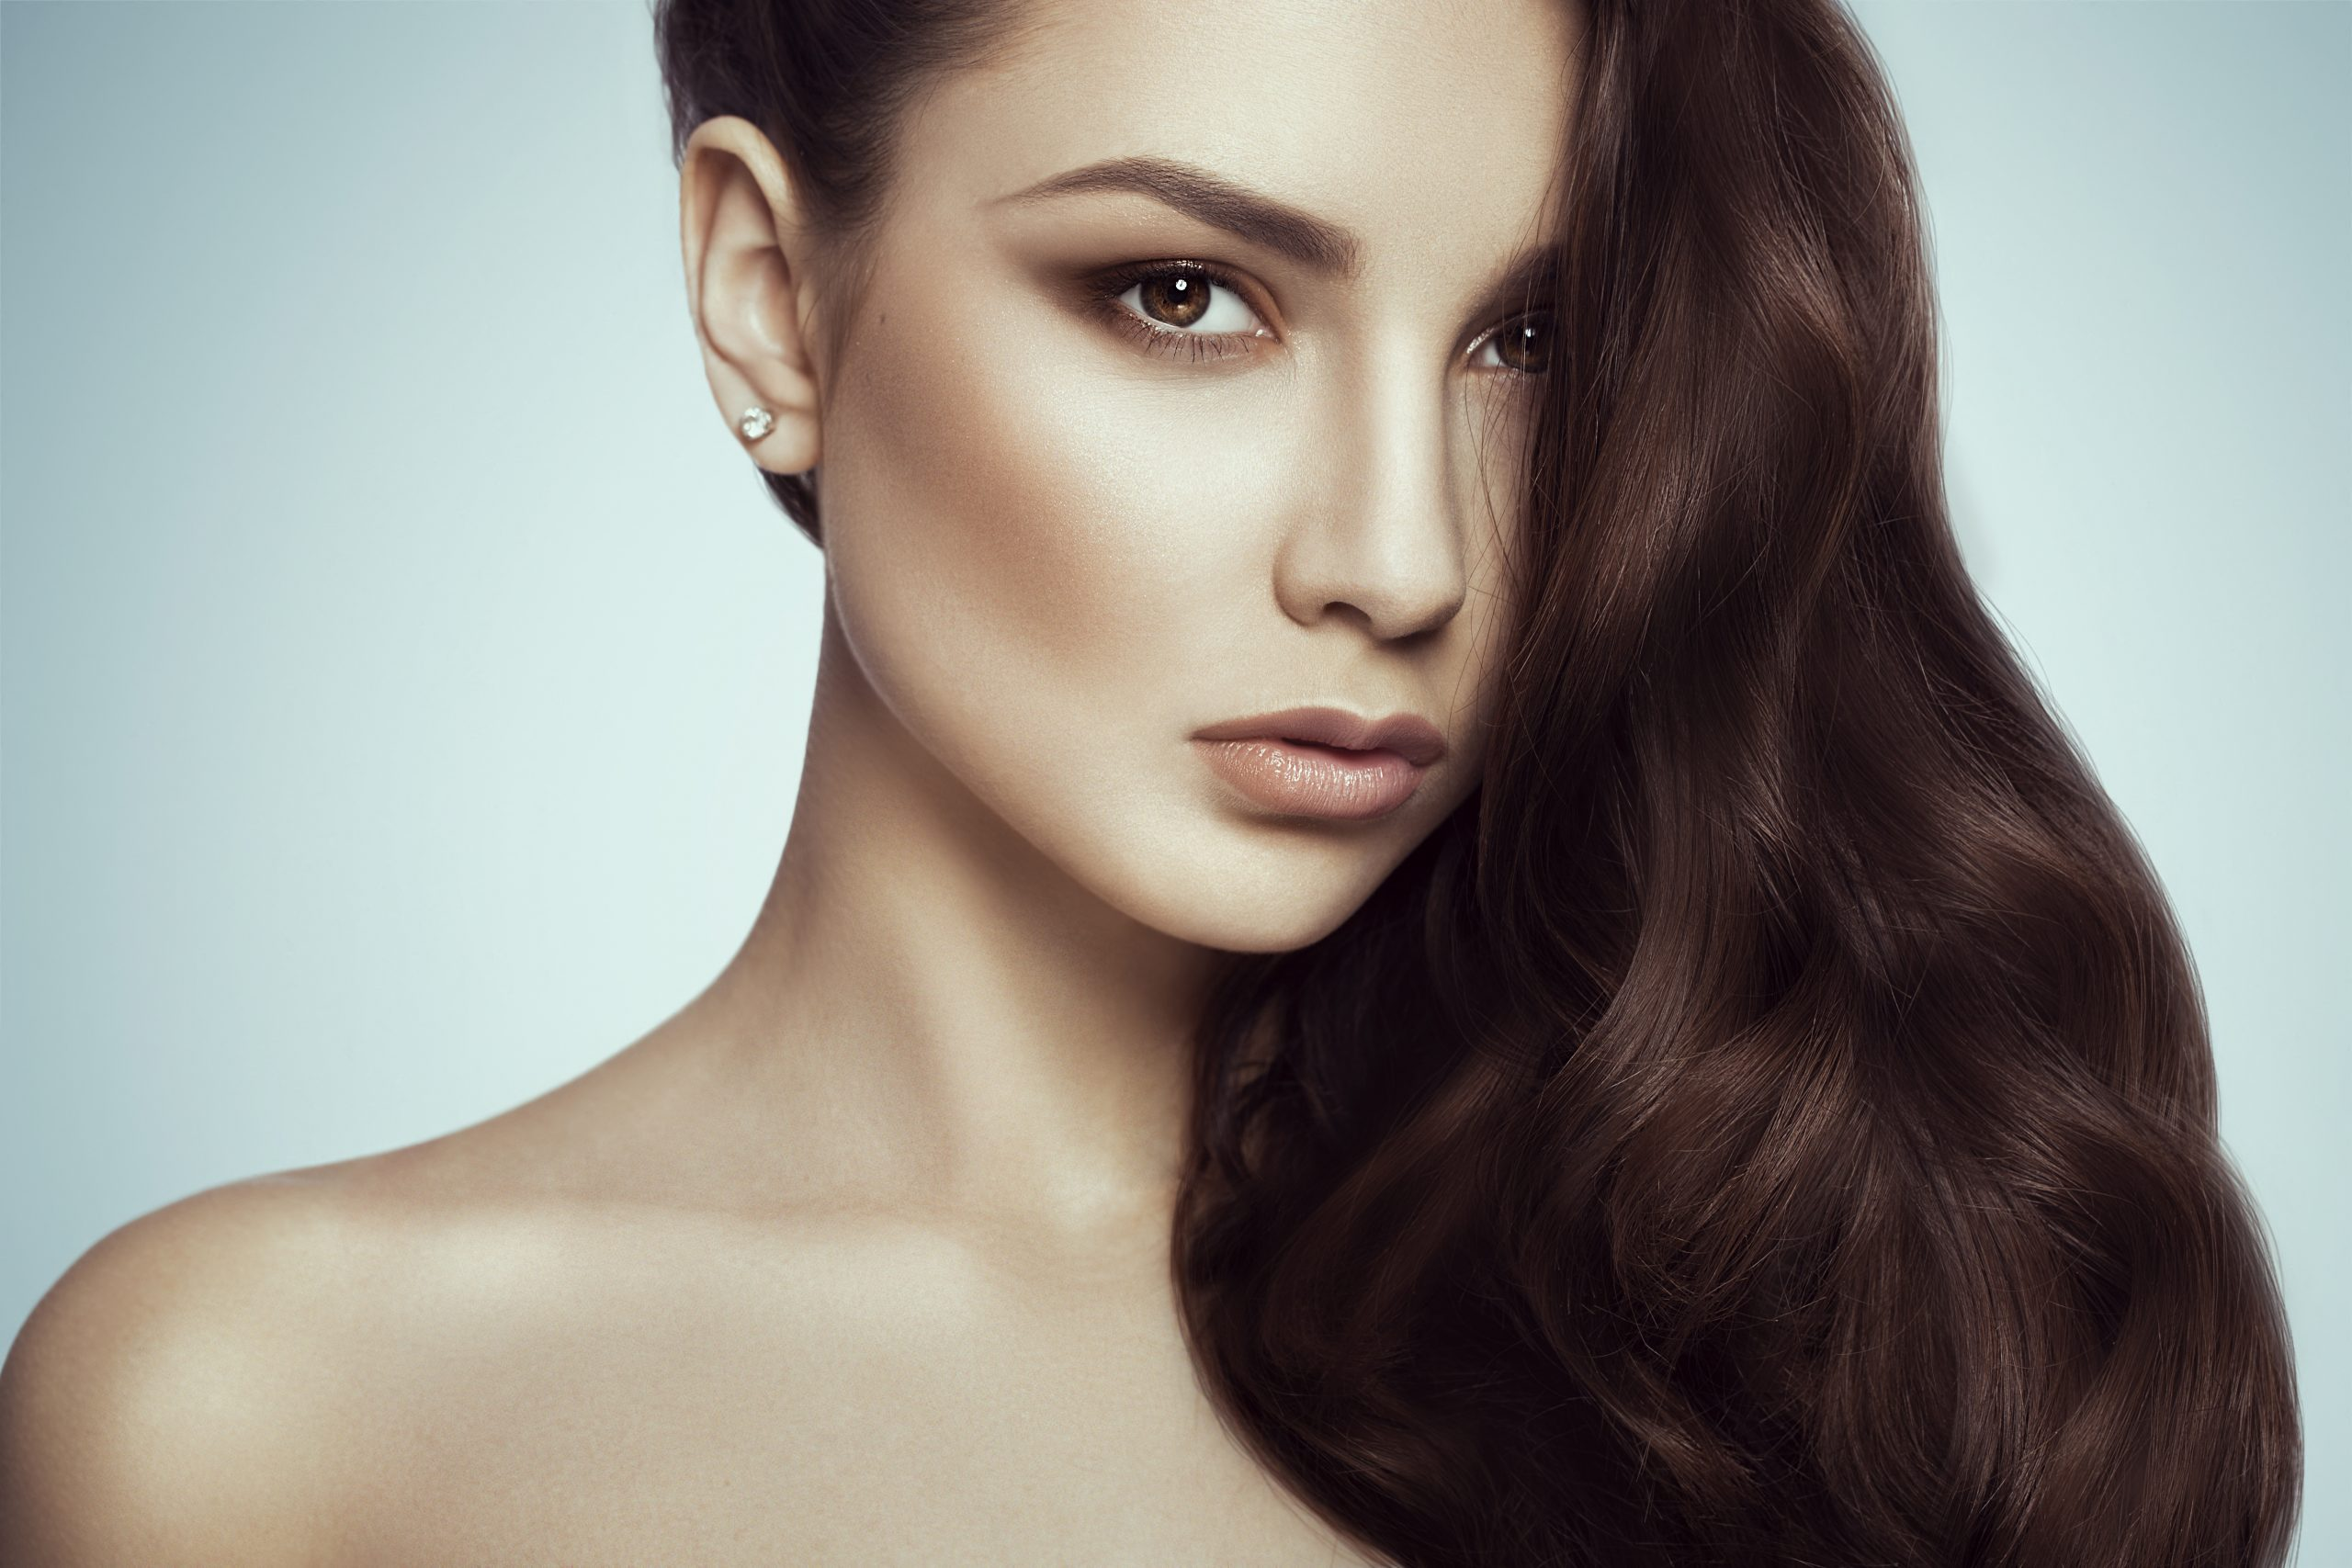 Get Your Skin Holiday-Ready With Microneedling: Everything You Need To Know About Microneedling